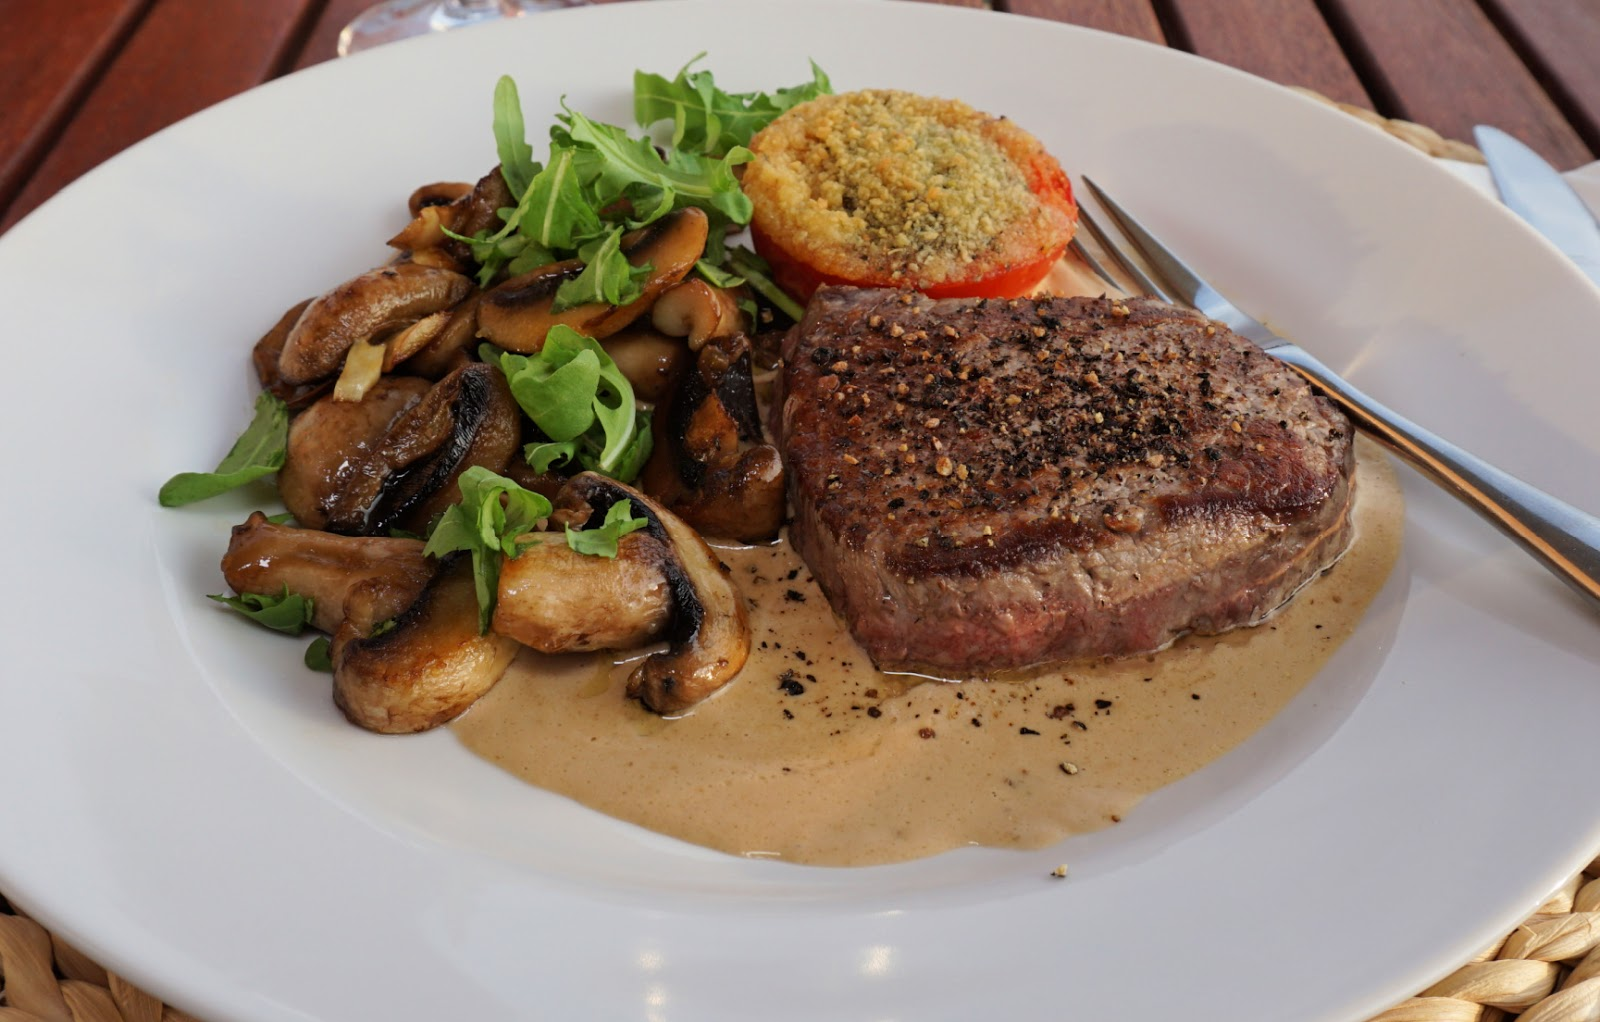 Steak au poivre à la Tour Eiffel